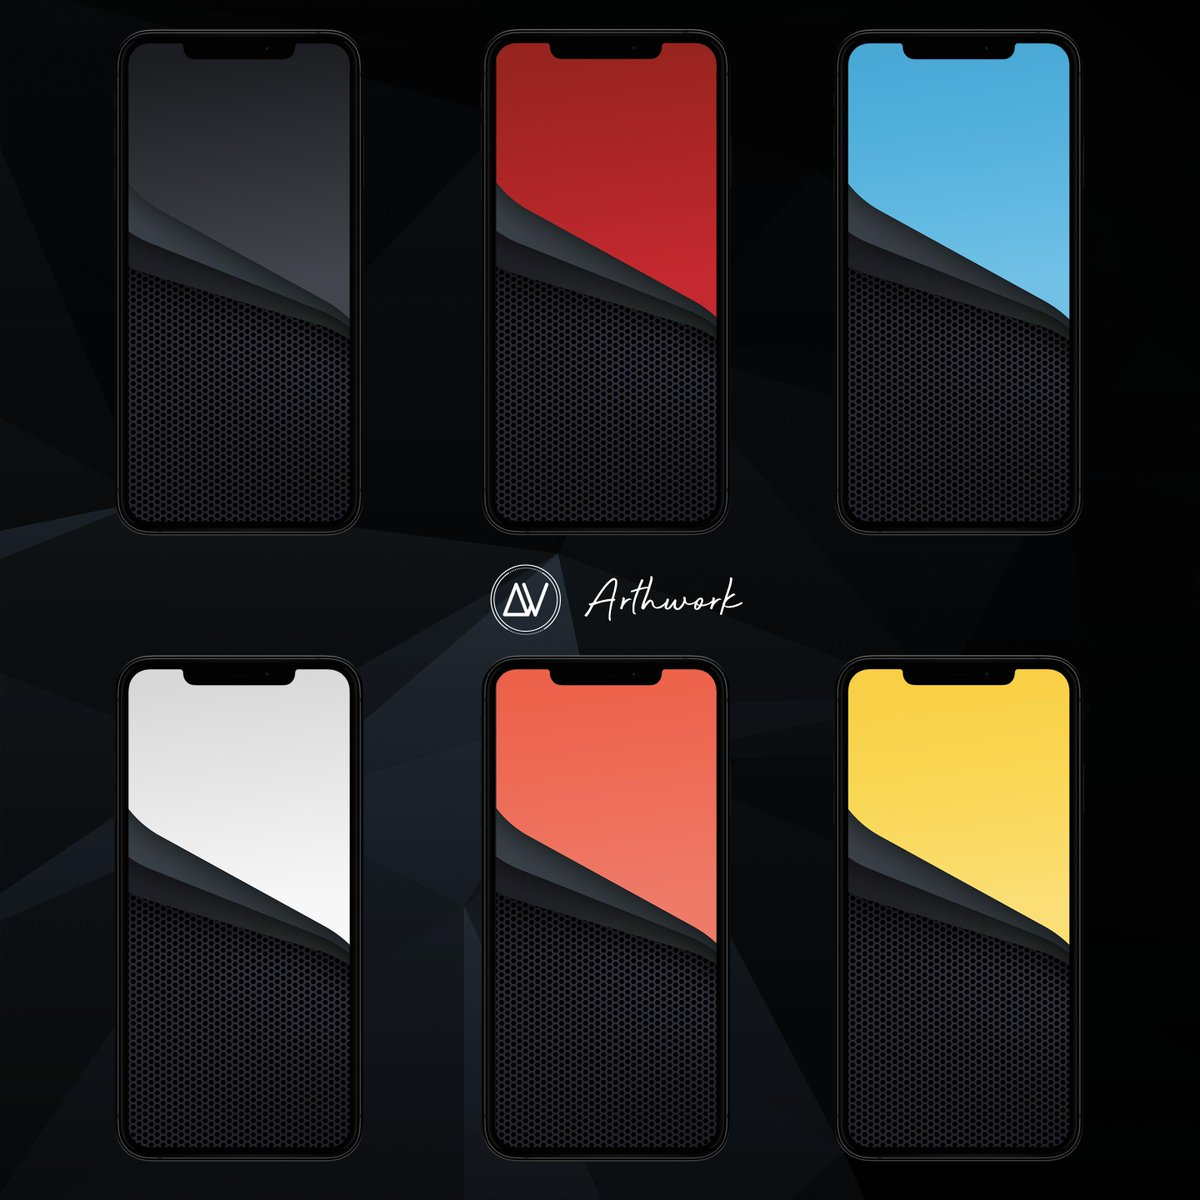 Arthwork On Twitter Iphonexr Colors Abstract Shapes Matrix Wallpaper Red Coral Blue Yellow Black White Available For Iphone Xs Xsmax X Xr Prod By Arthur1992as Download Same Link